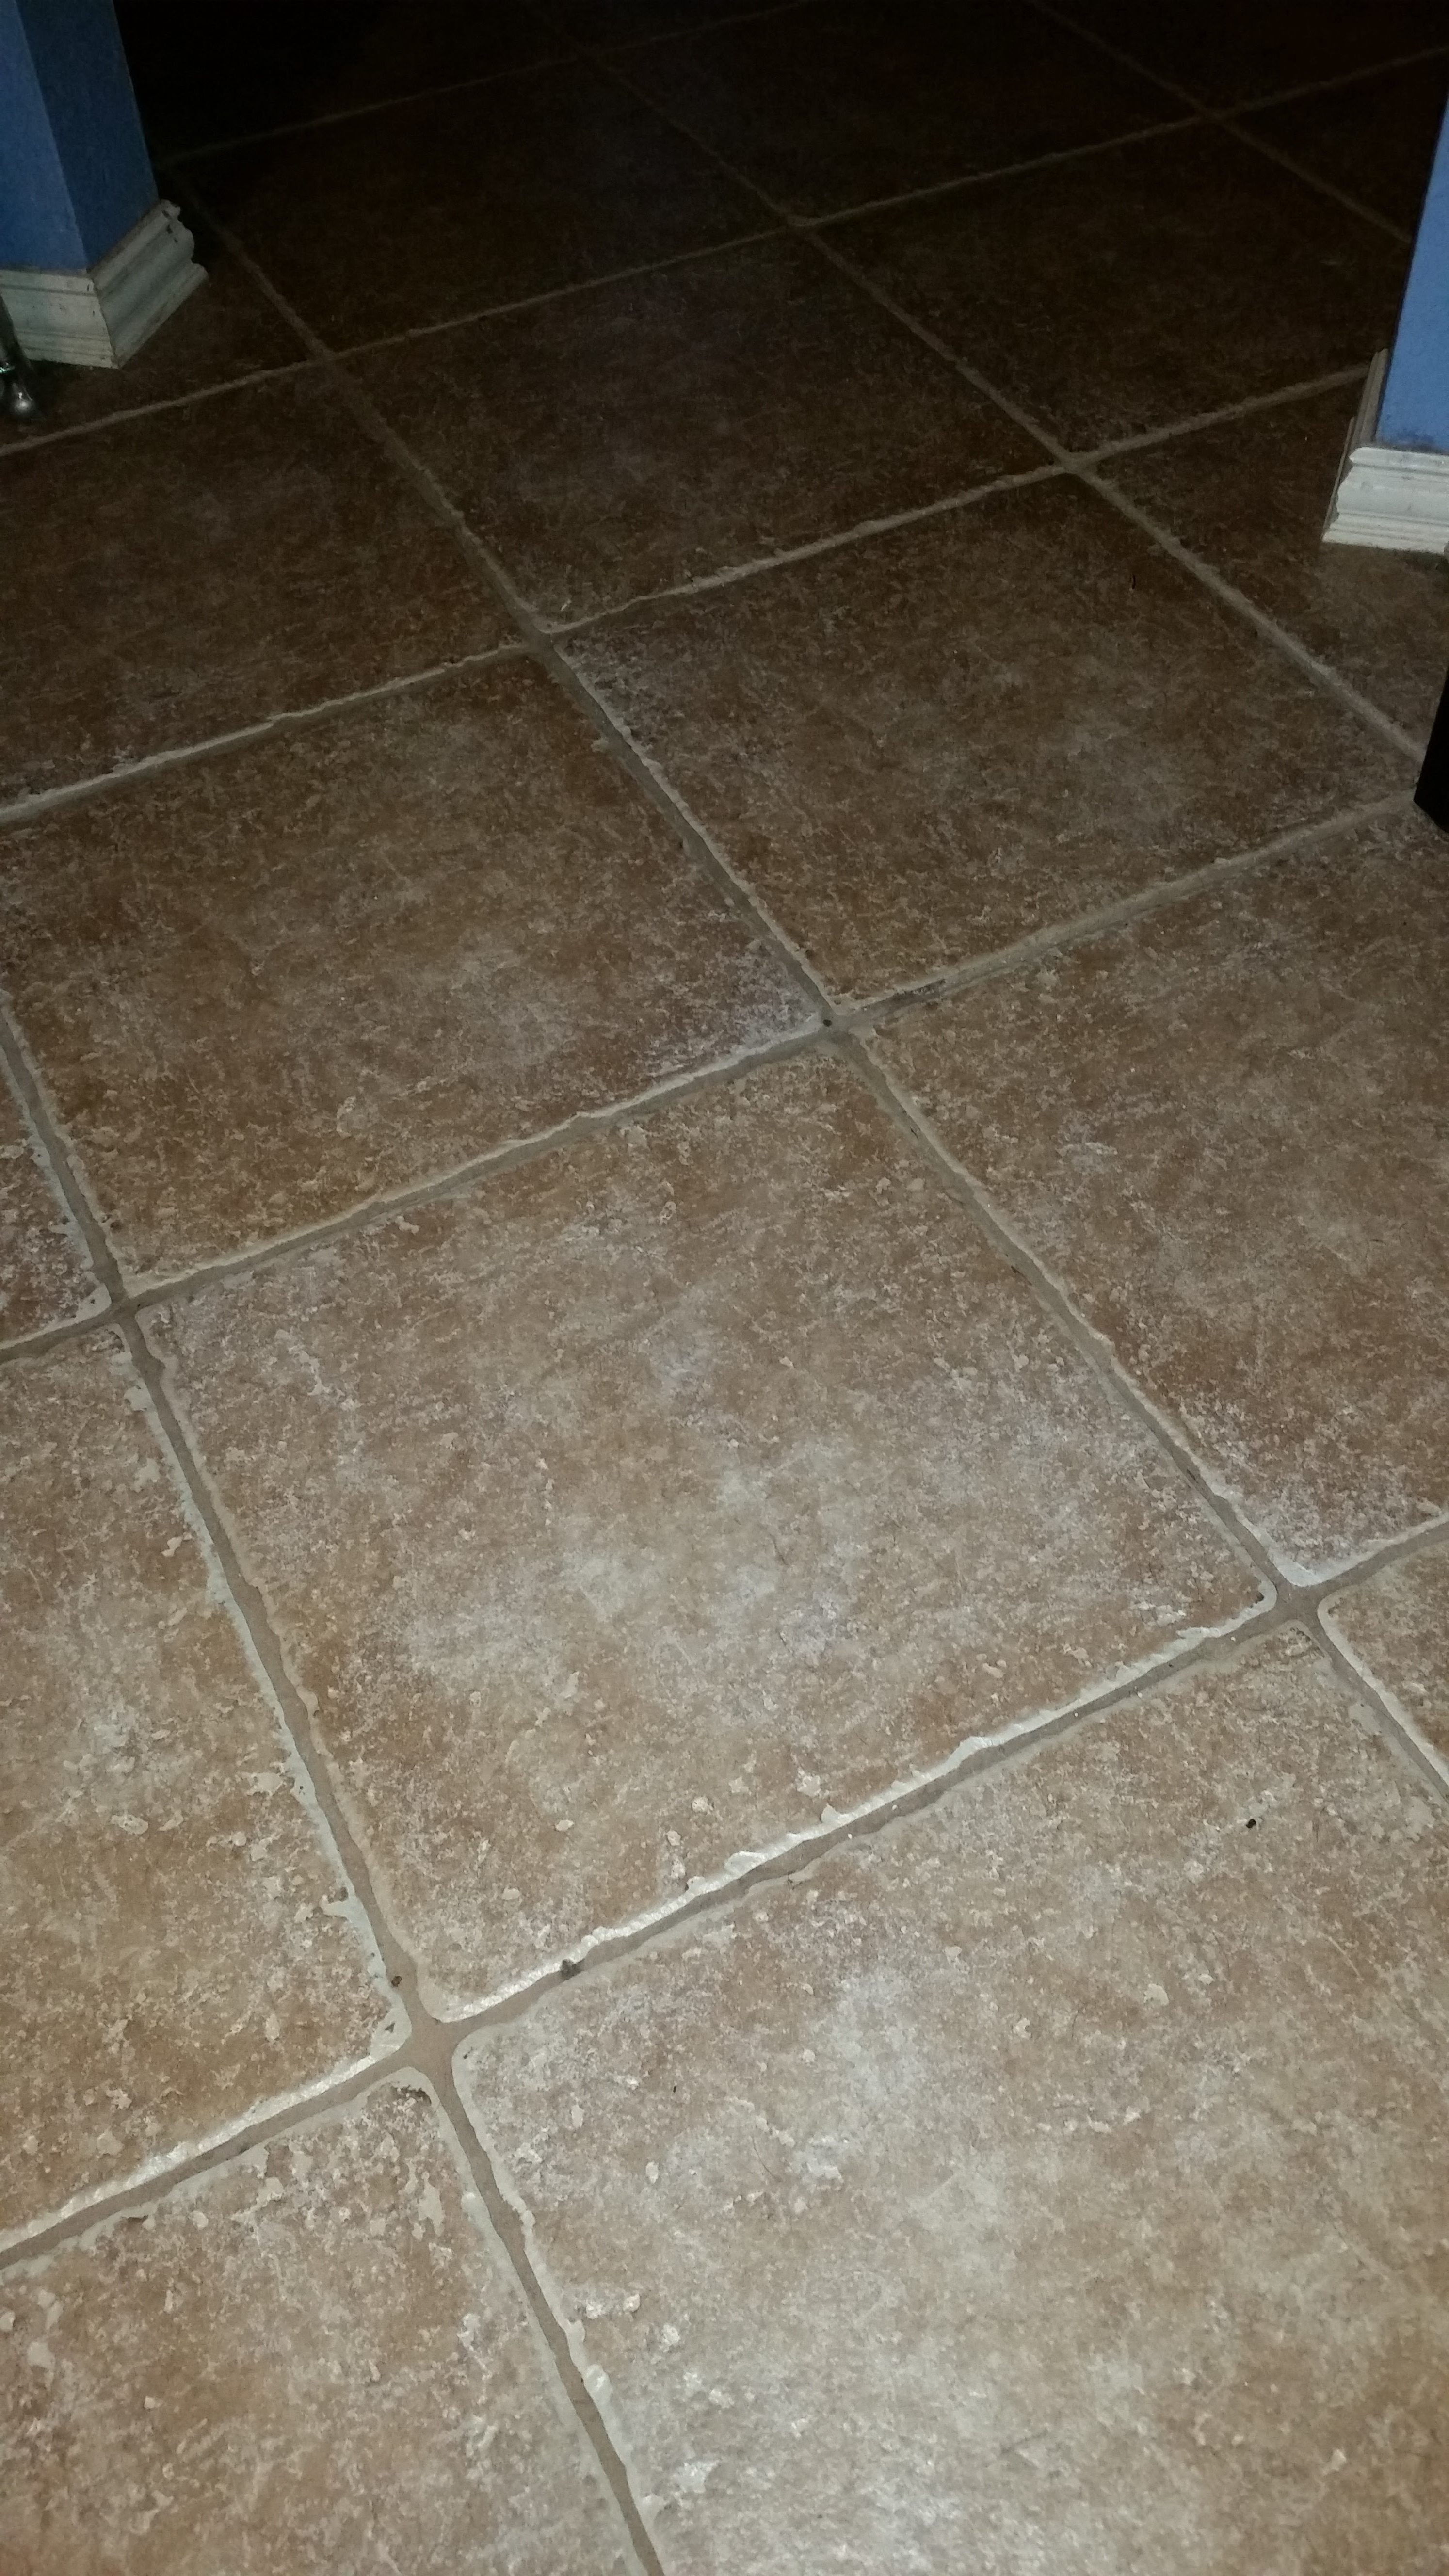 Clean Porcealain Tile and Grout